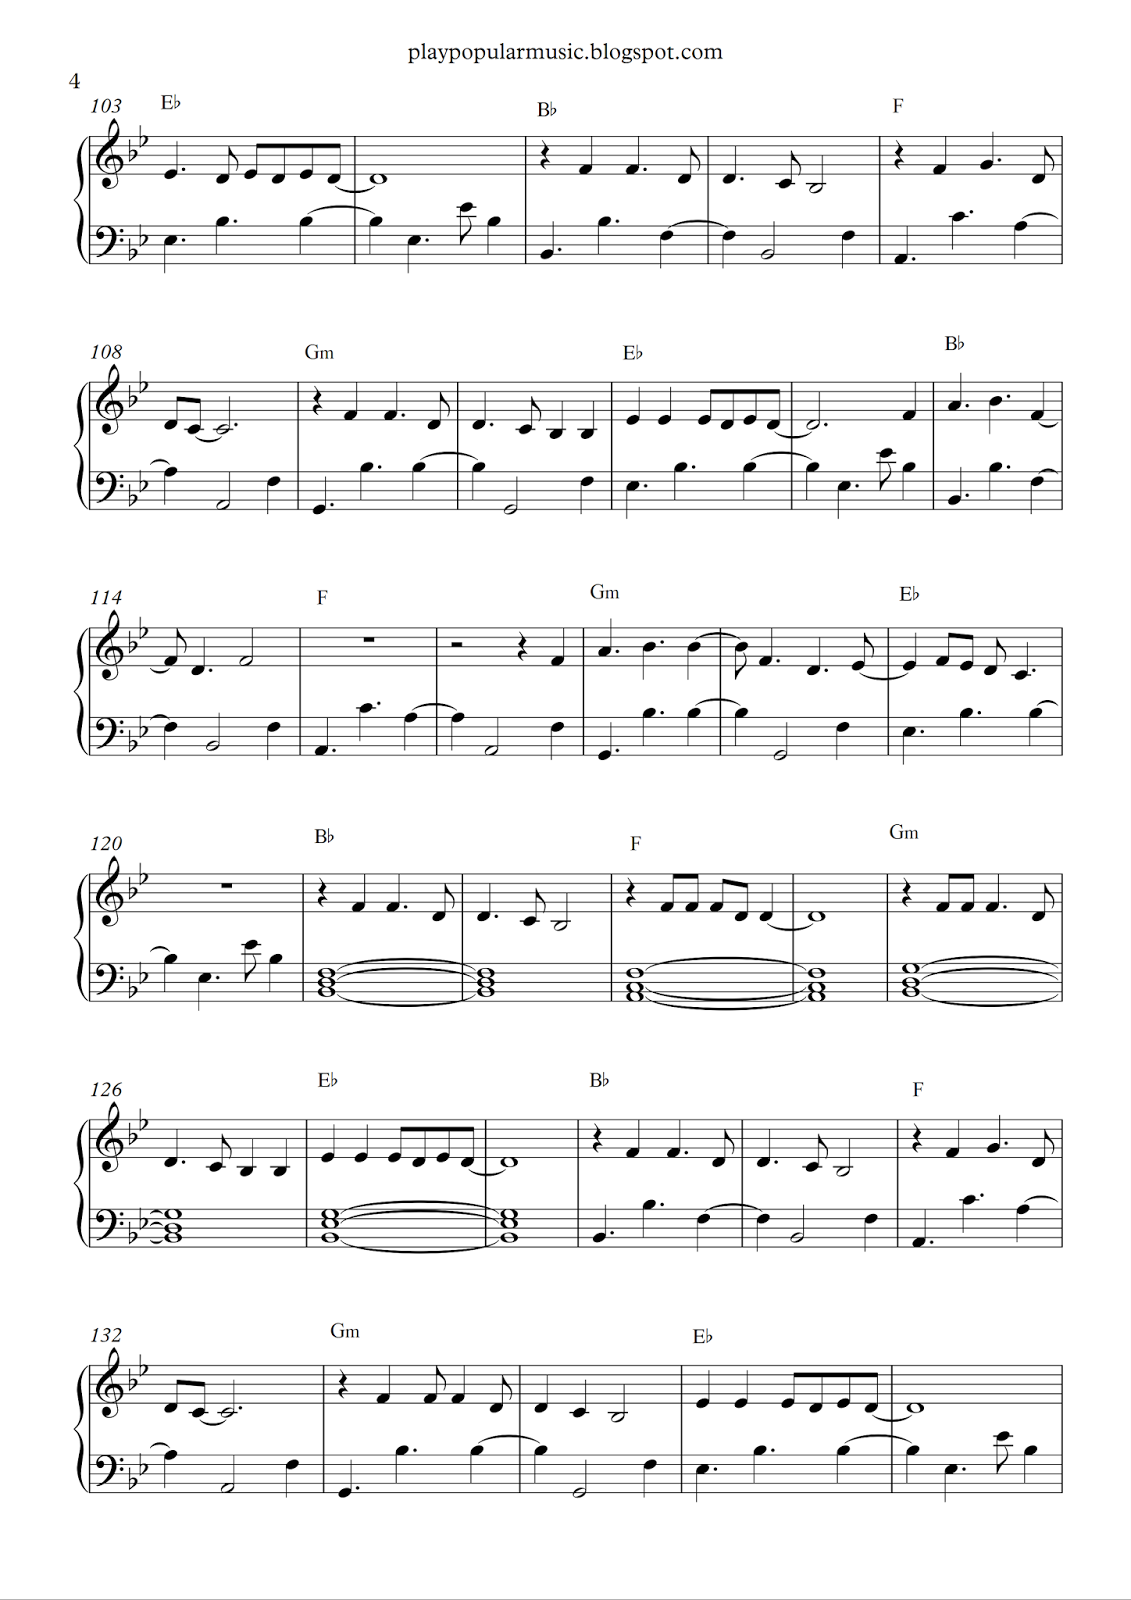 Free piano sheet music say you wont let go james arthurpdf ill free piano sheet music say you wont let go james arthurpdf i hexwebz Choice Image